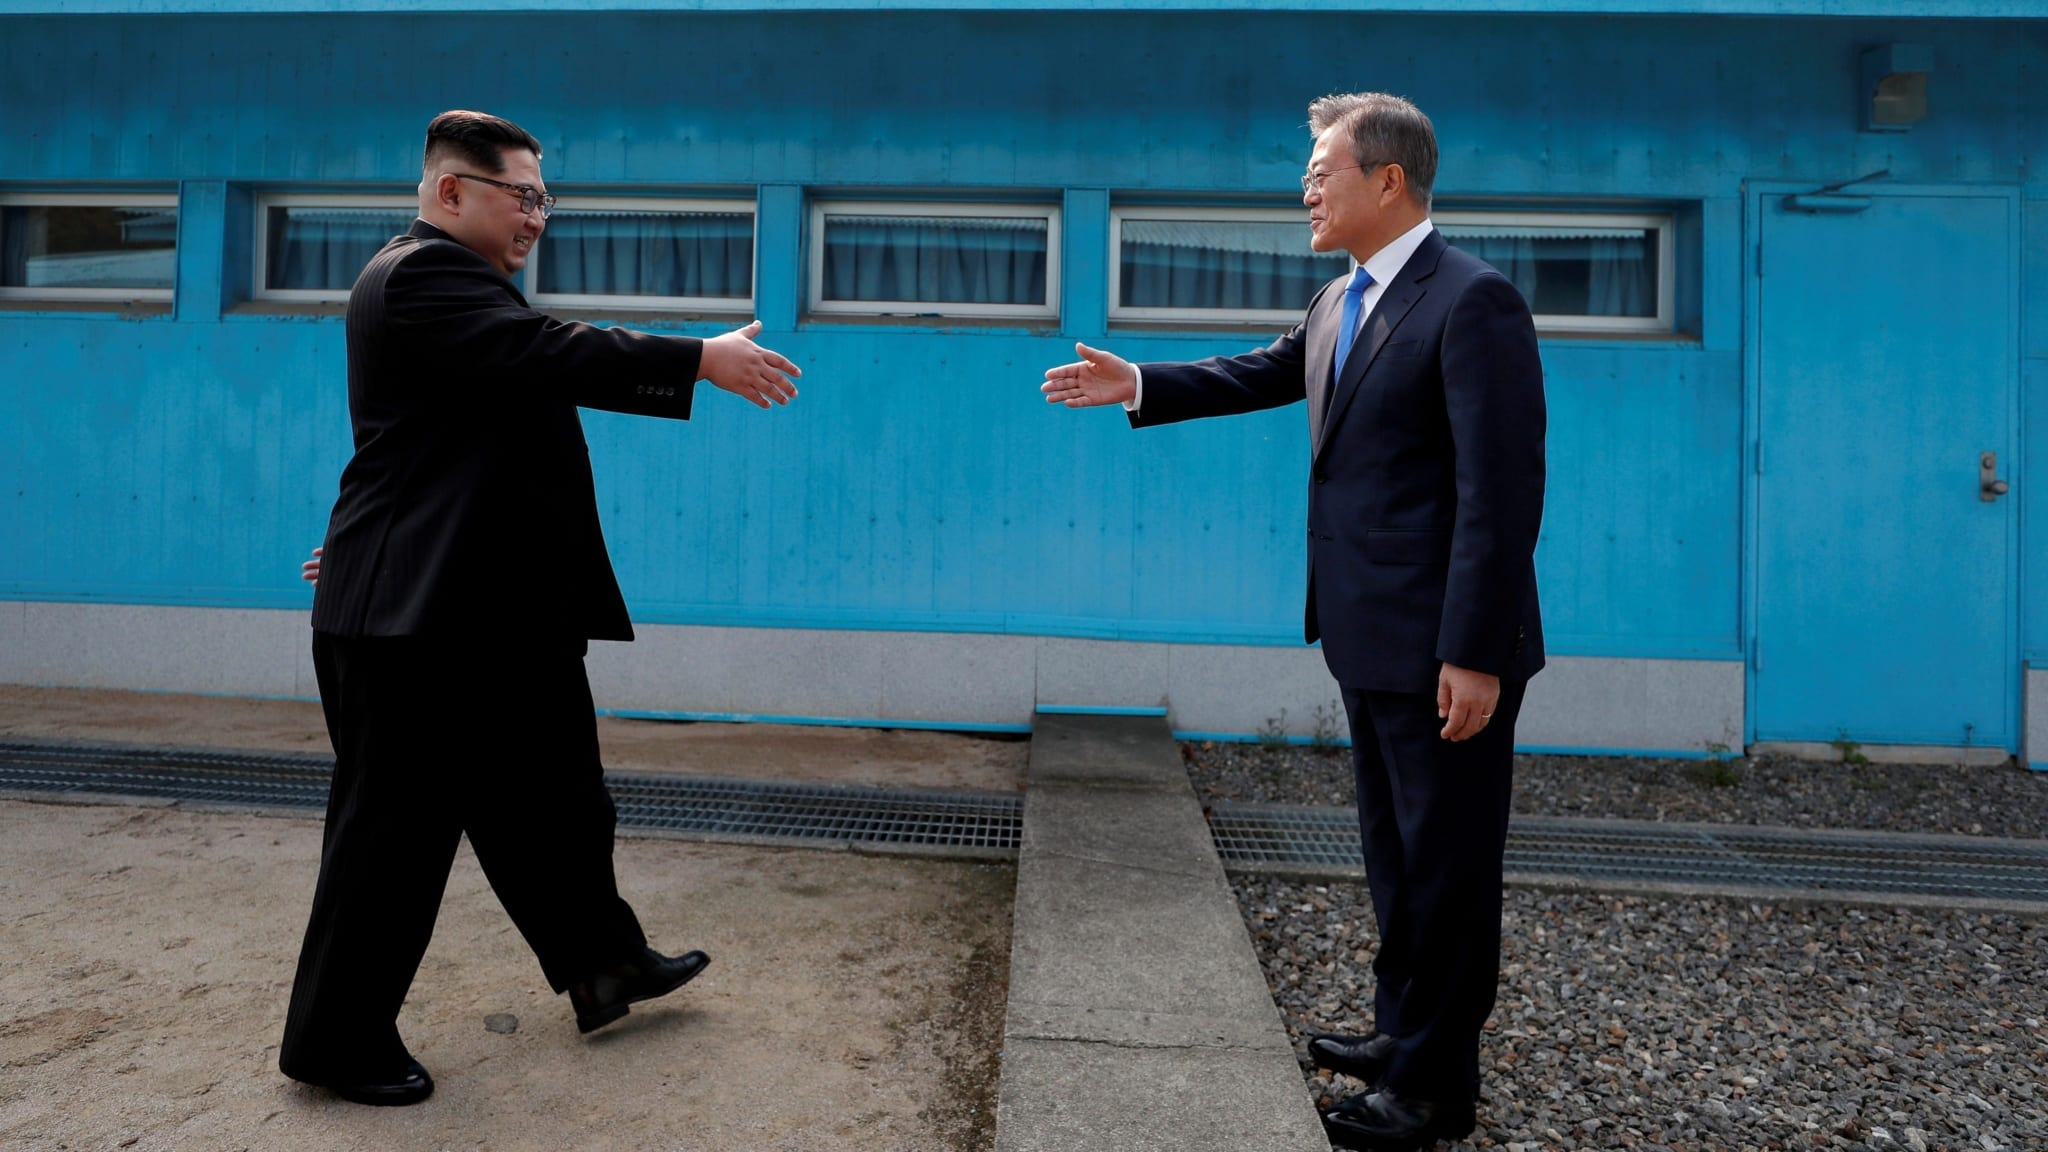 Image North Korea's Kim Jong-un and South Korea's Moon Jae-in meet in an historic summit, April 27, 2018 (Korea Summit Press Pool/Pool via Reuters)